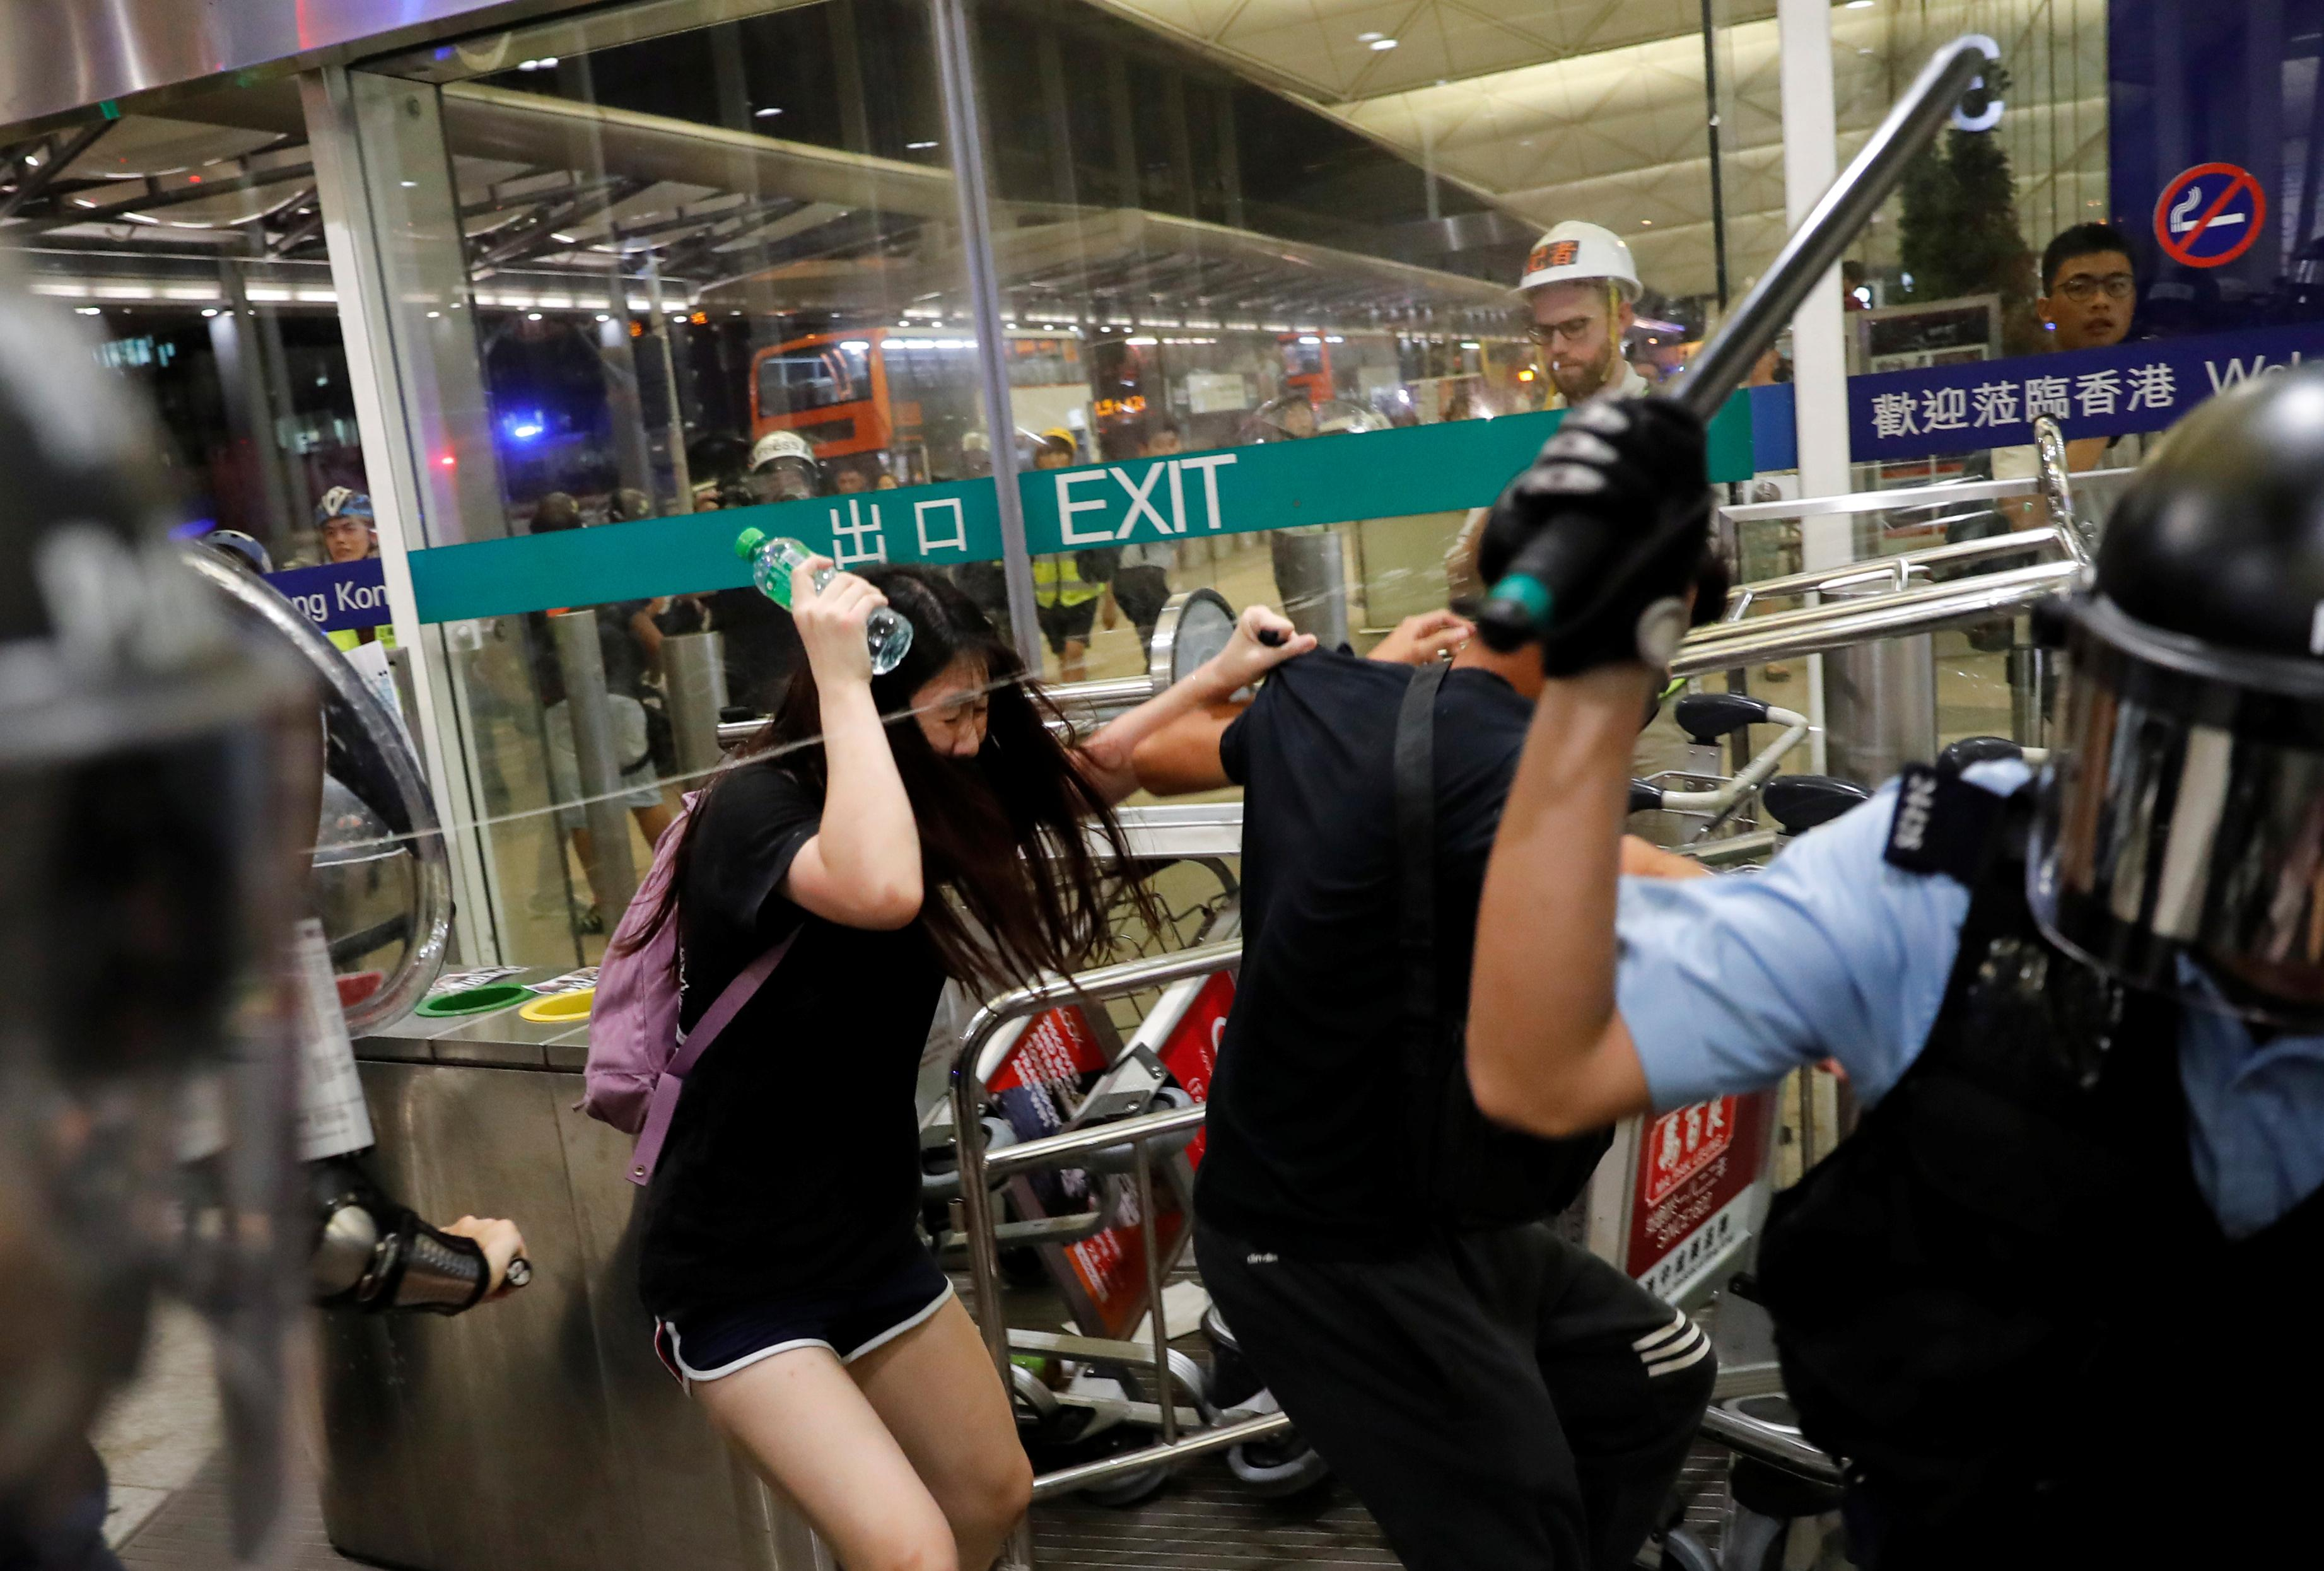 Police, protesters clash at Hong Kong airport after flights halted for second day